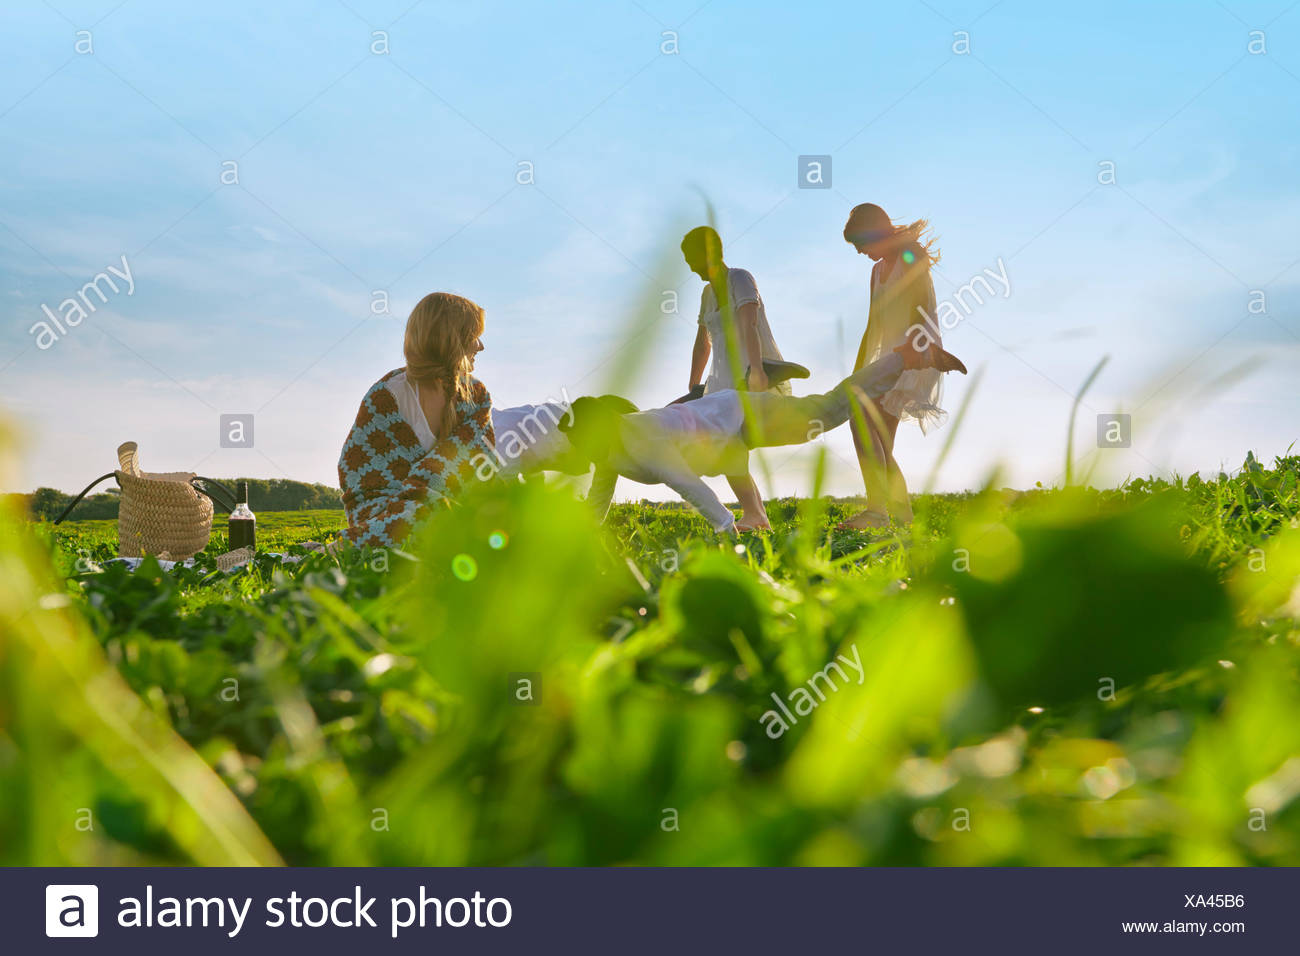 Group of young adult friends having pretend wheelbarrow race in field - Stock Image